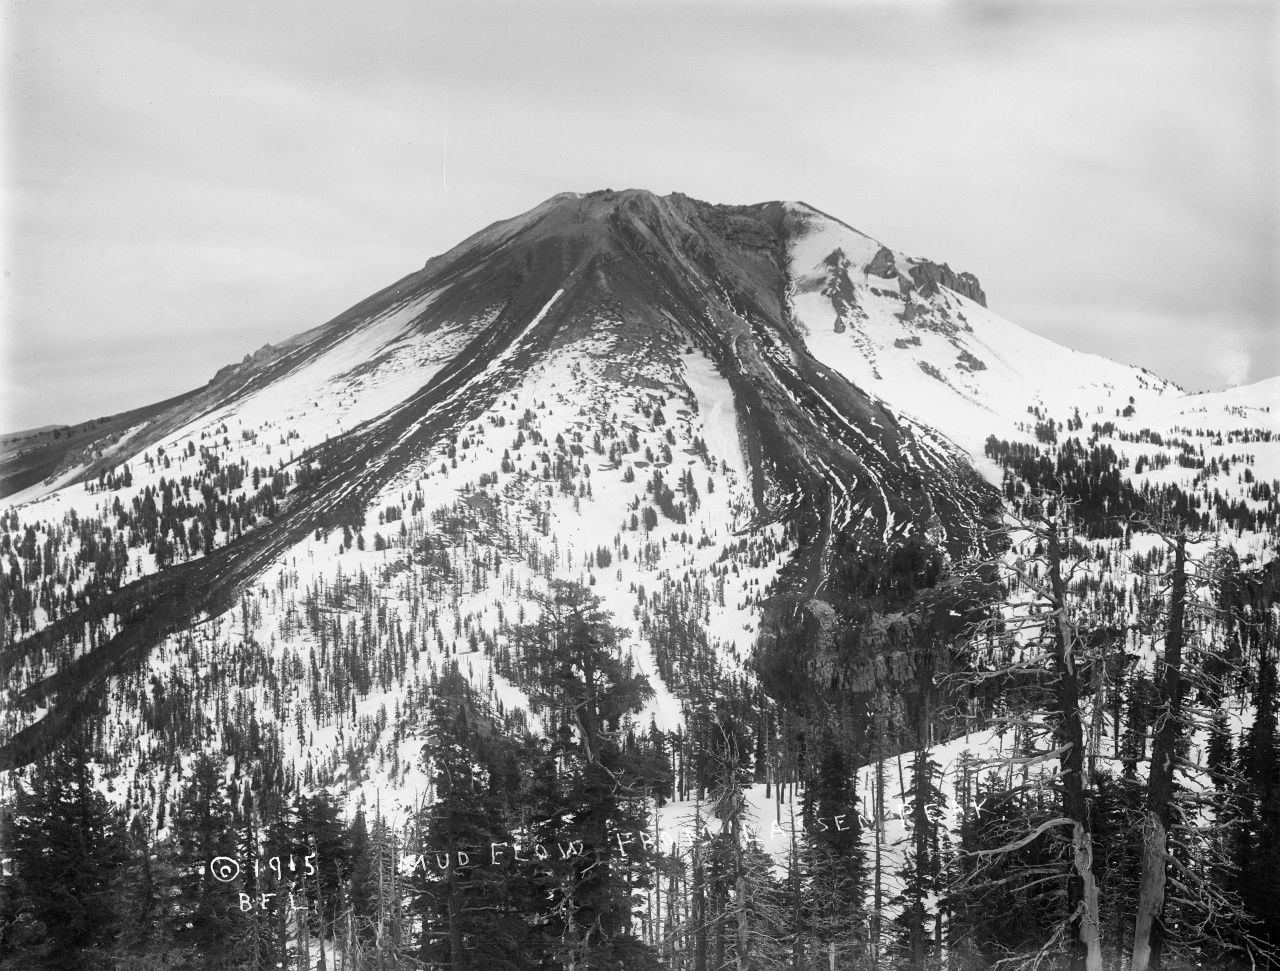 Lassen Peak from the west, shortly after the eruptive climax of 22 May 1915. The hot pumice fallout on the snow covered flanks of the volcano generated low-volume lahars more viscous and not reaching the base of Lassen Peak, unlike the lahars pf 19-20.05.15  - photo BF Loomis - Archive VI-PH-C1.27 Lassen NPS / Flickr